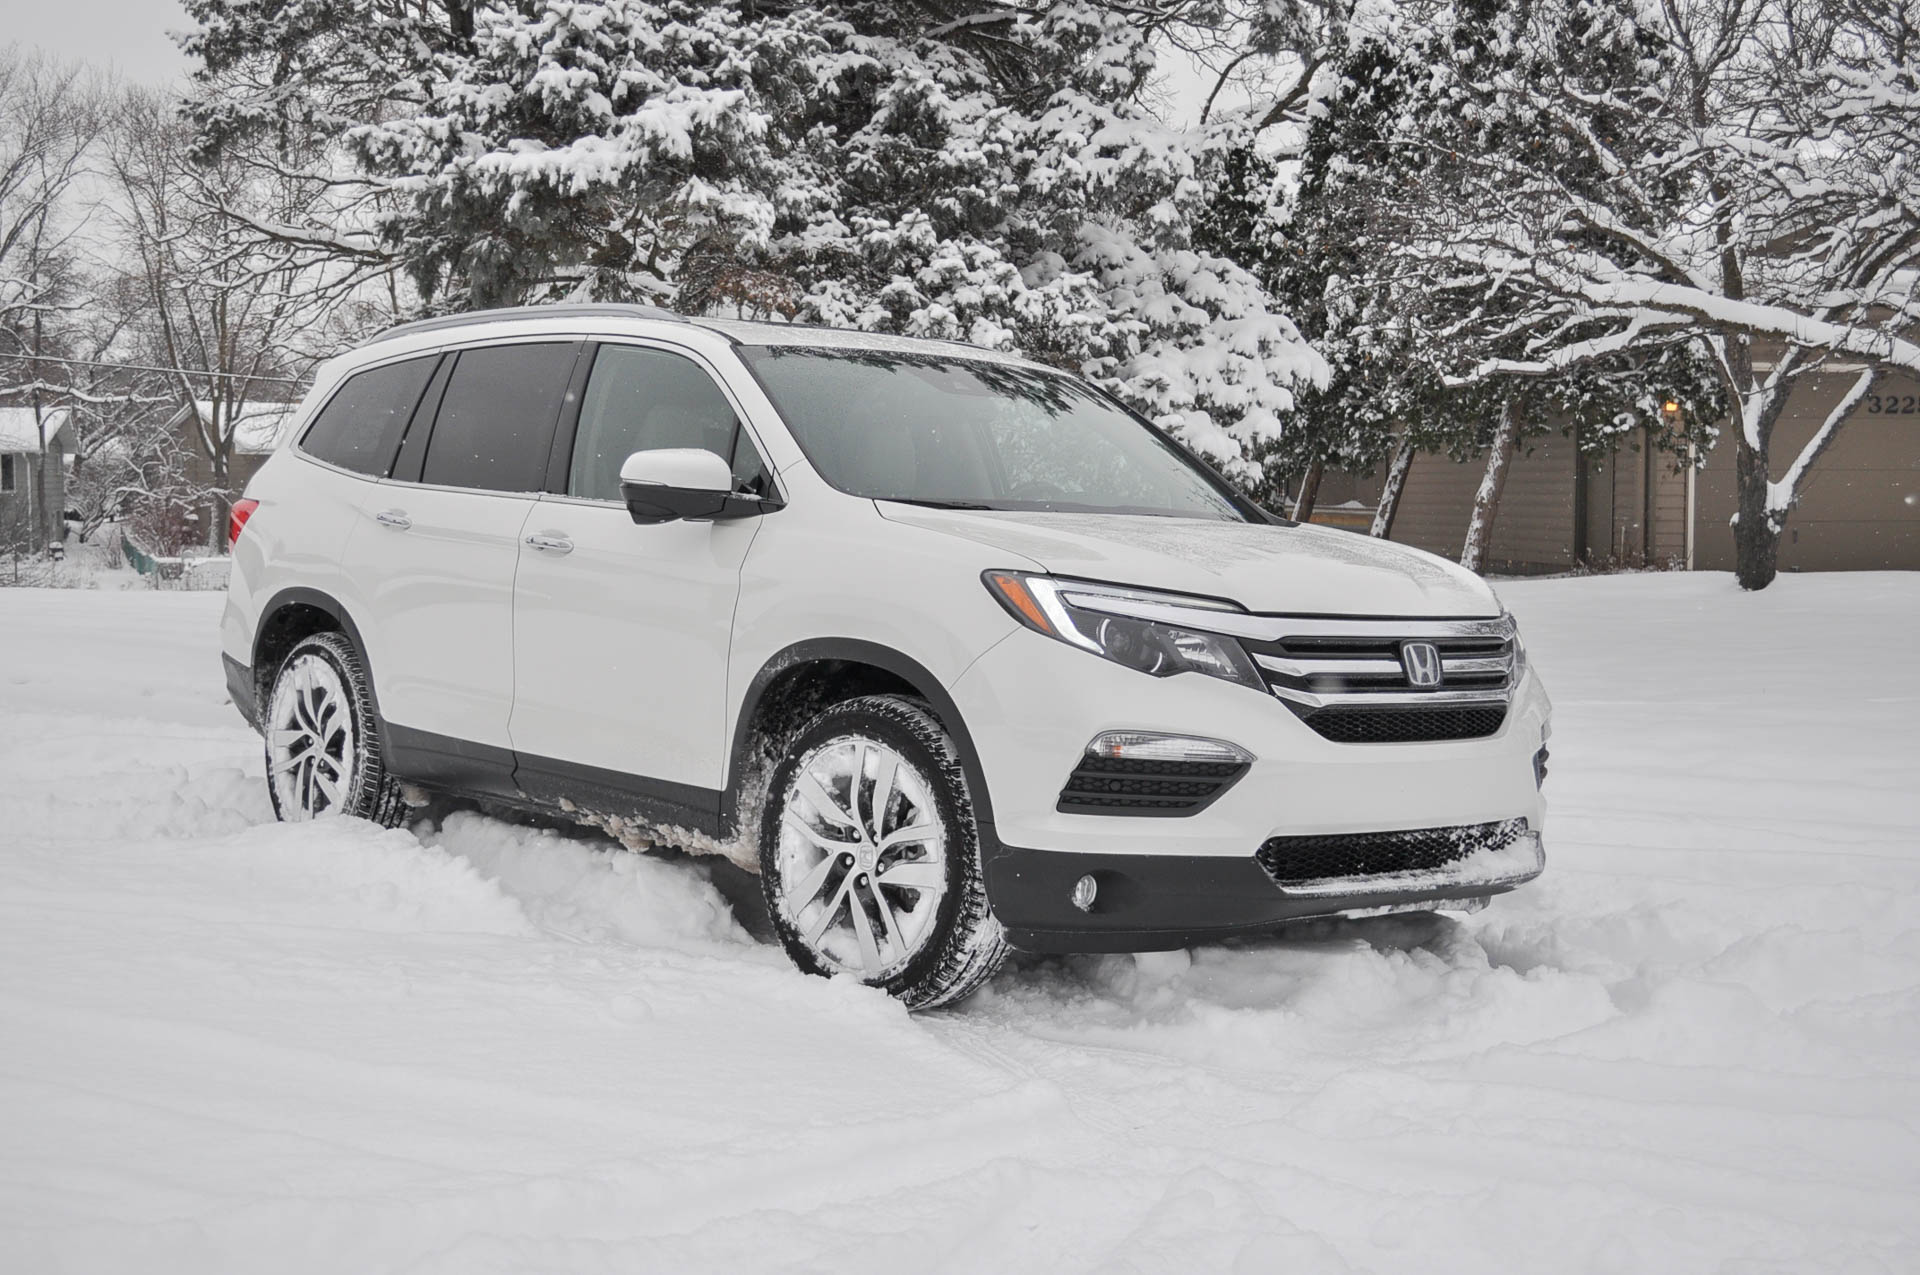 2016 honda pilot long term road test handling winter weather for Honda pilot images